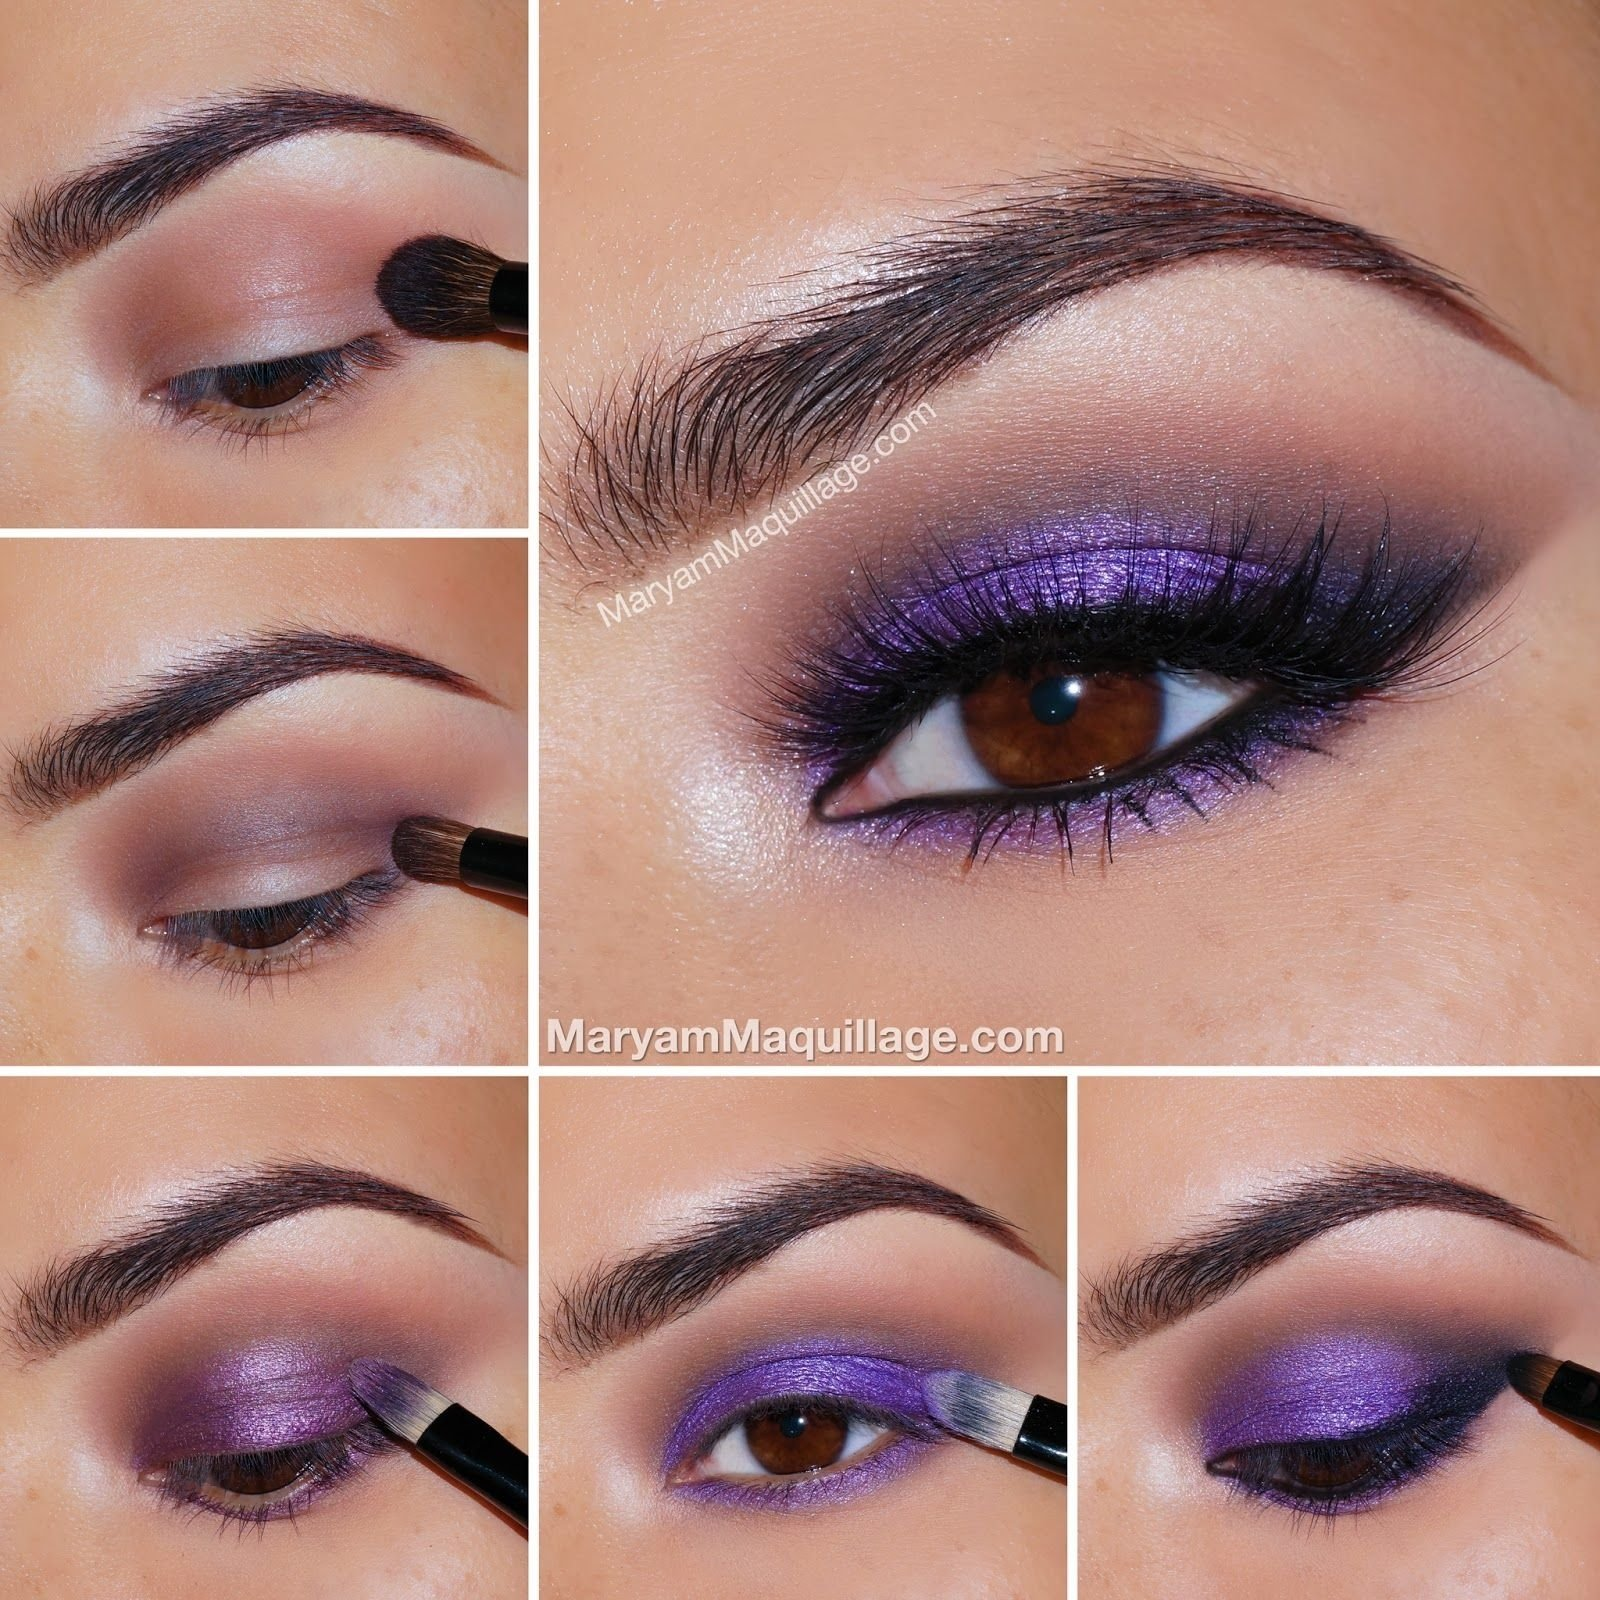 10 Lovable Makeup Ideas For Dark Brown Eyes 5 eyeshadow looks perfect for brown eyed girls bold colors brown 2 2021